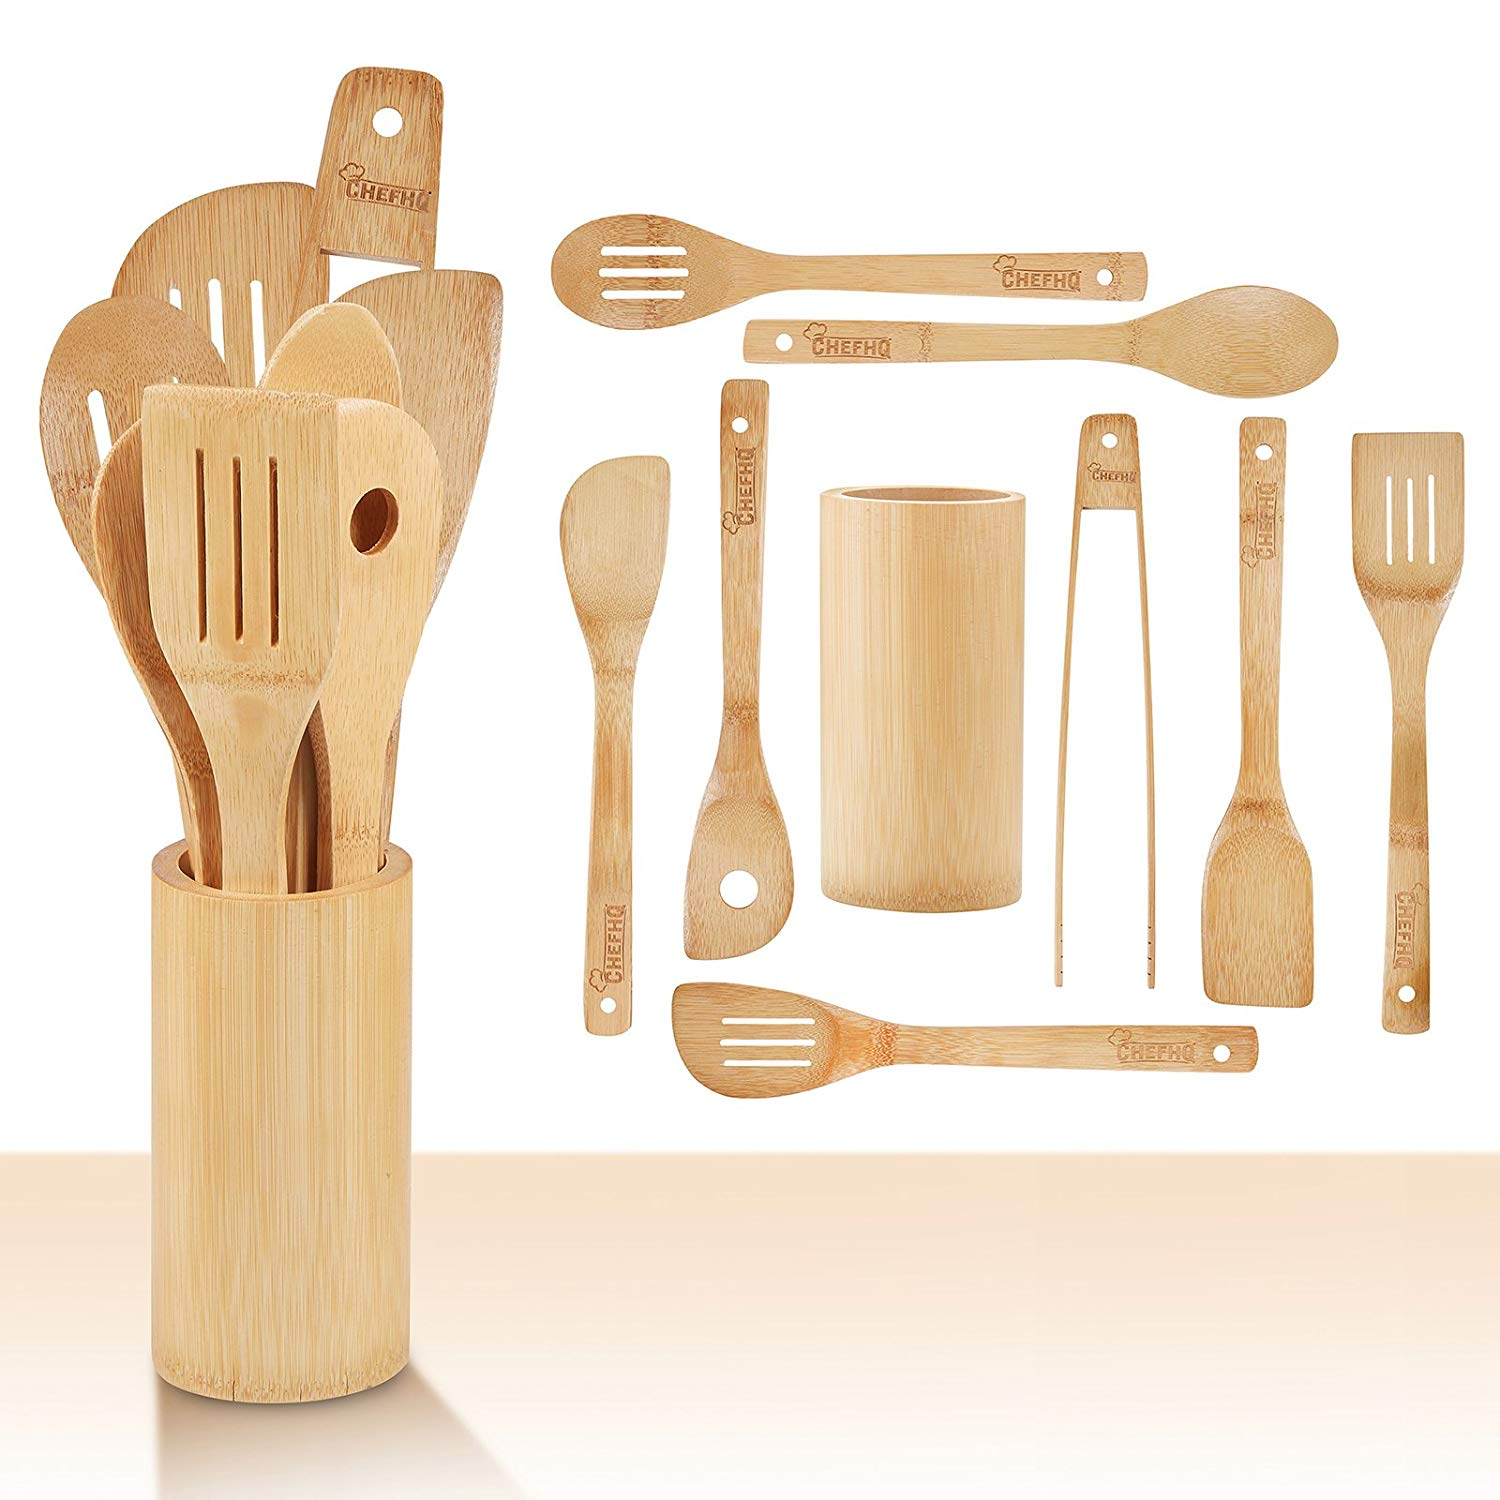 Top 10 Best Wood Cooking Utensils In 2019